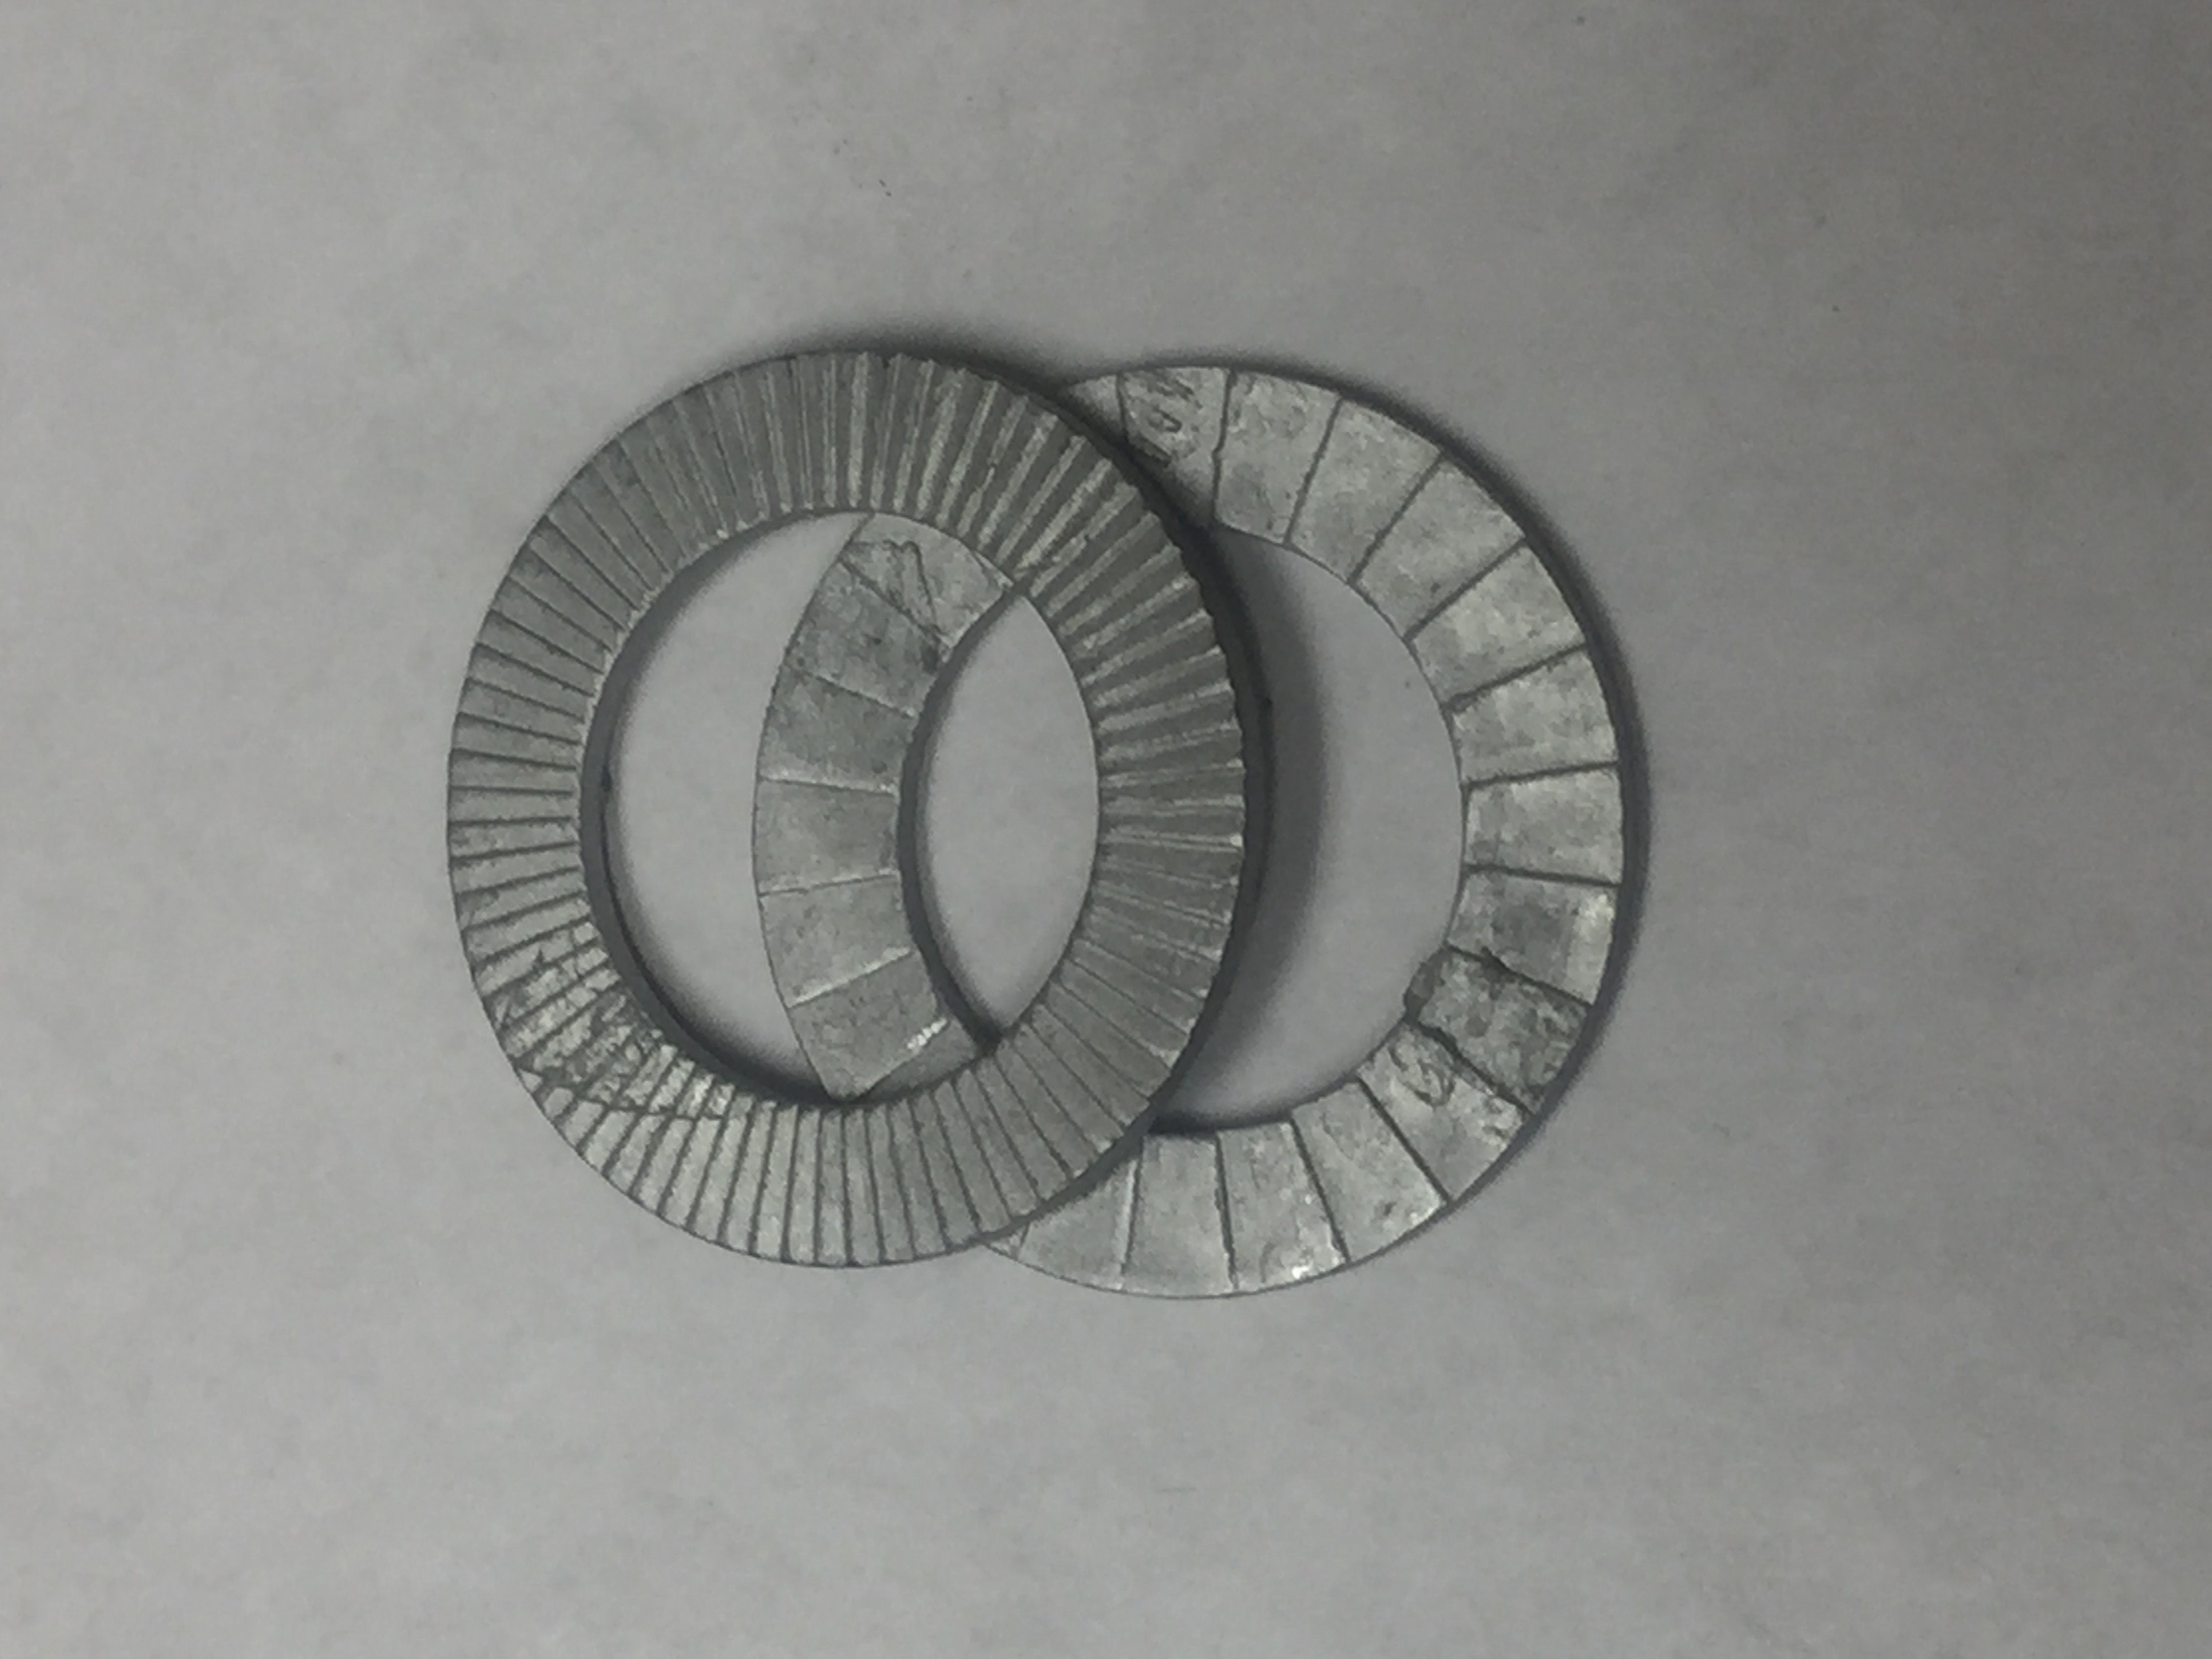 3/8 ZINC PLATED NORD-LOCK WASHER